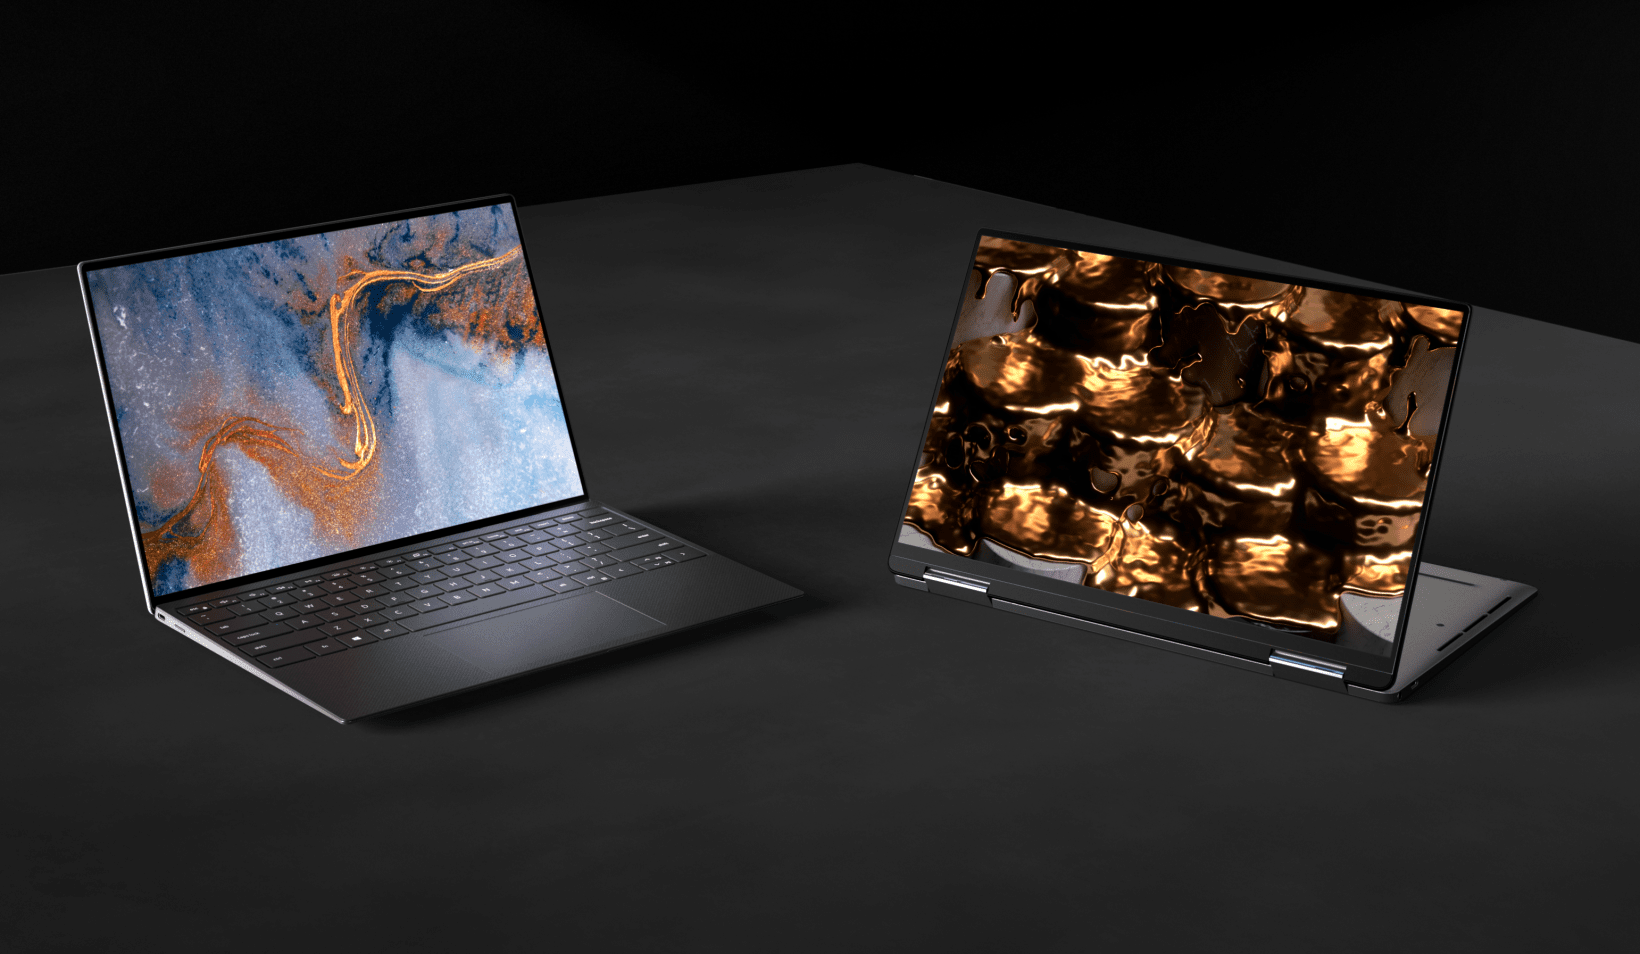 Dell's XPS 13 family gets a big performance update with Intel's 11th-gen chips